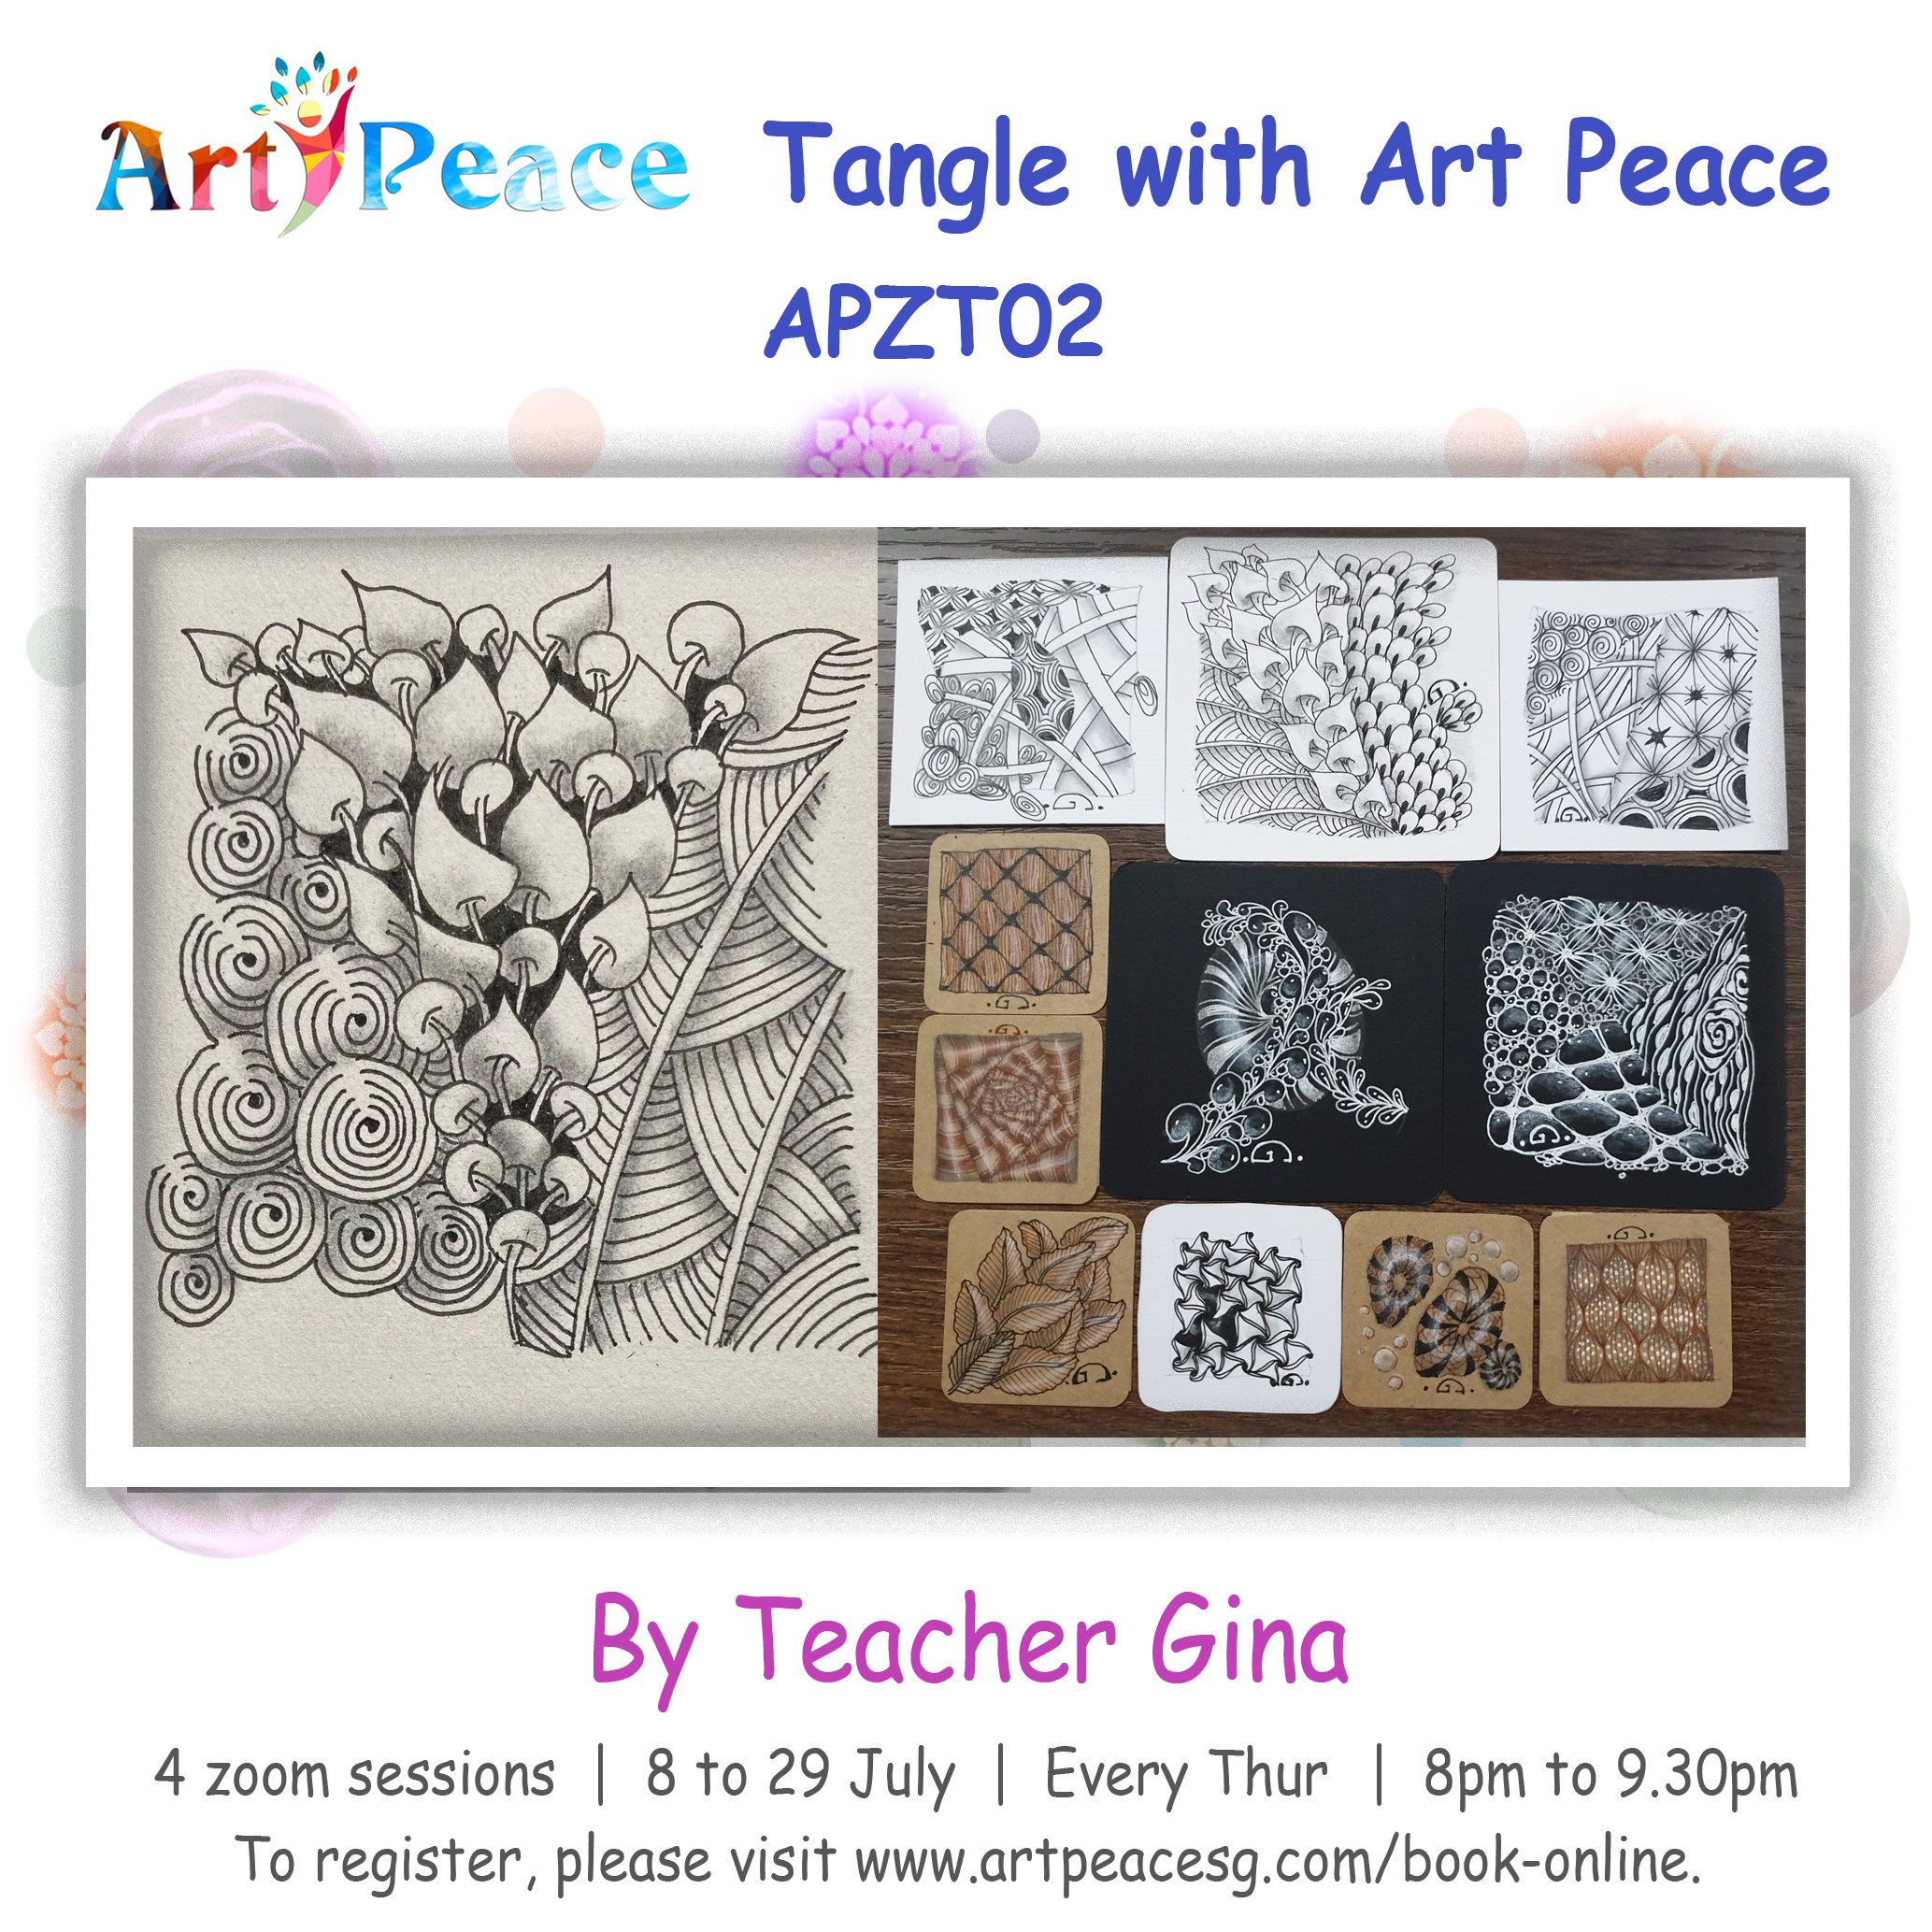 Tangle with Art Peace - APZT02